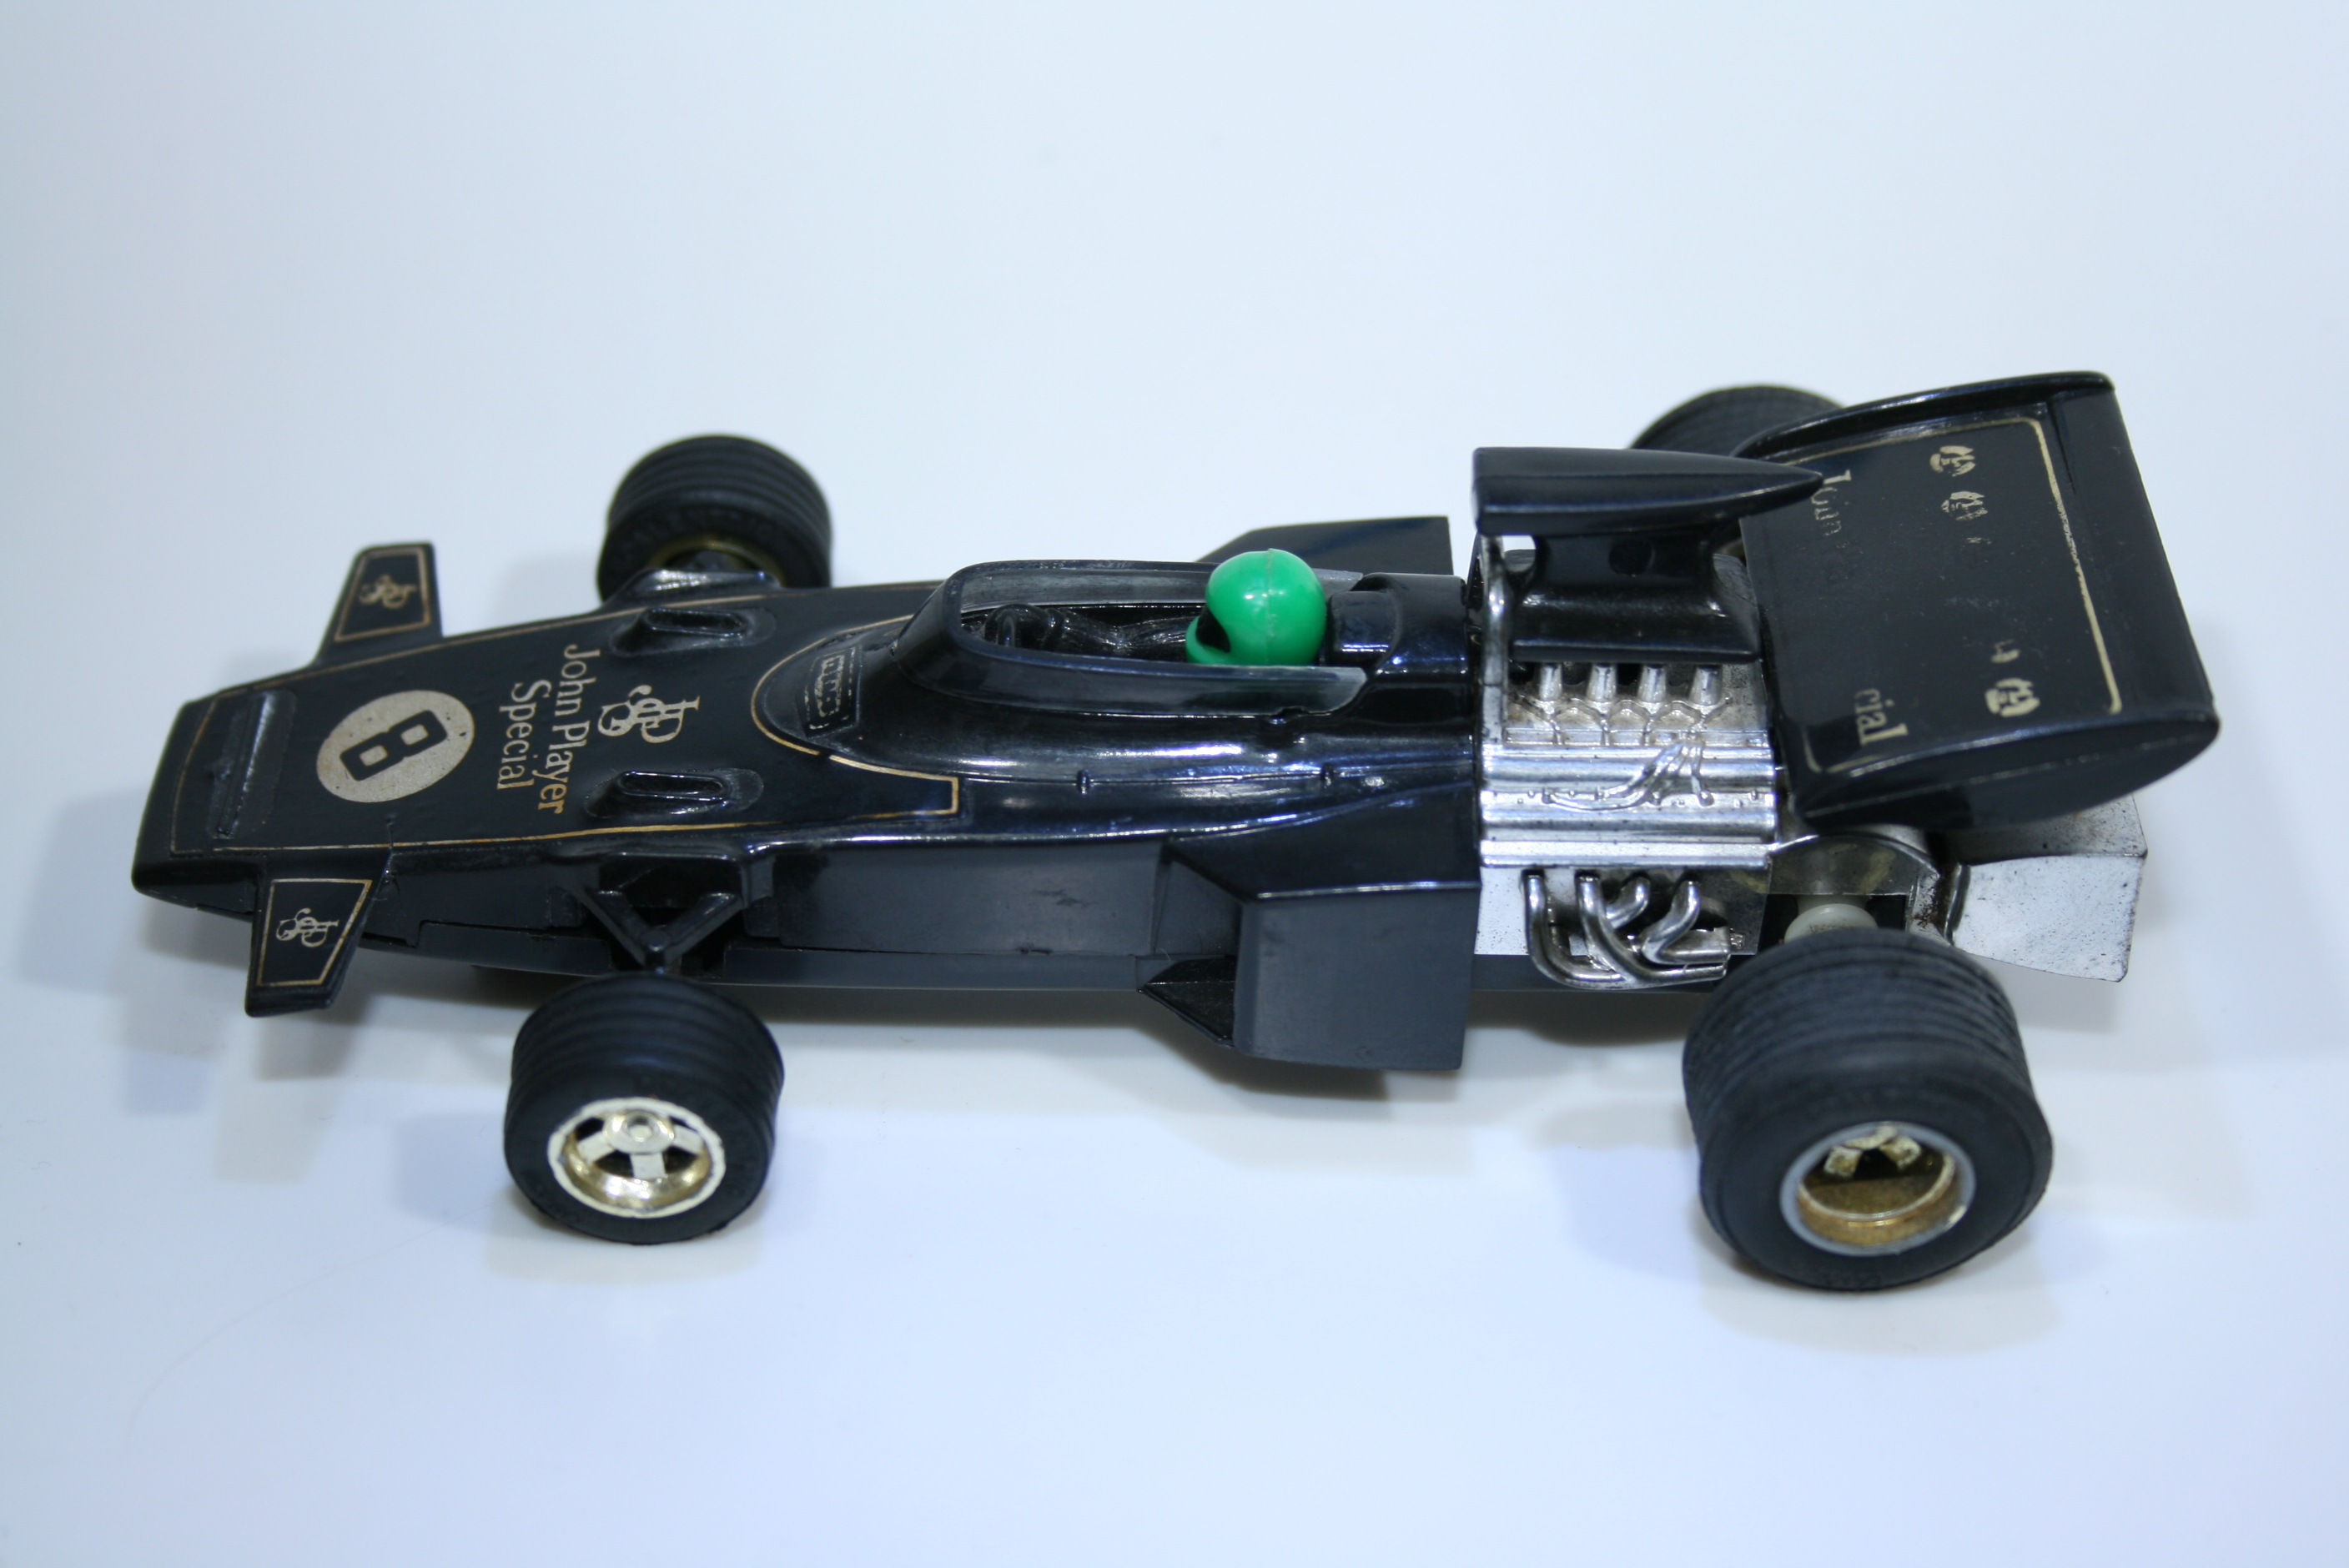 88 Lotus 72D 1972 E Fittipaldi Scalextric C050 1973